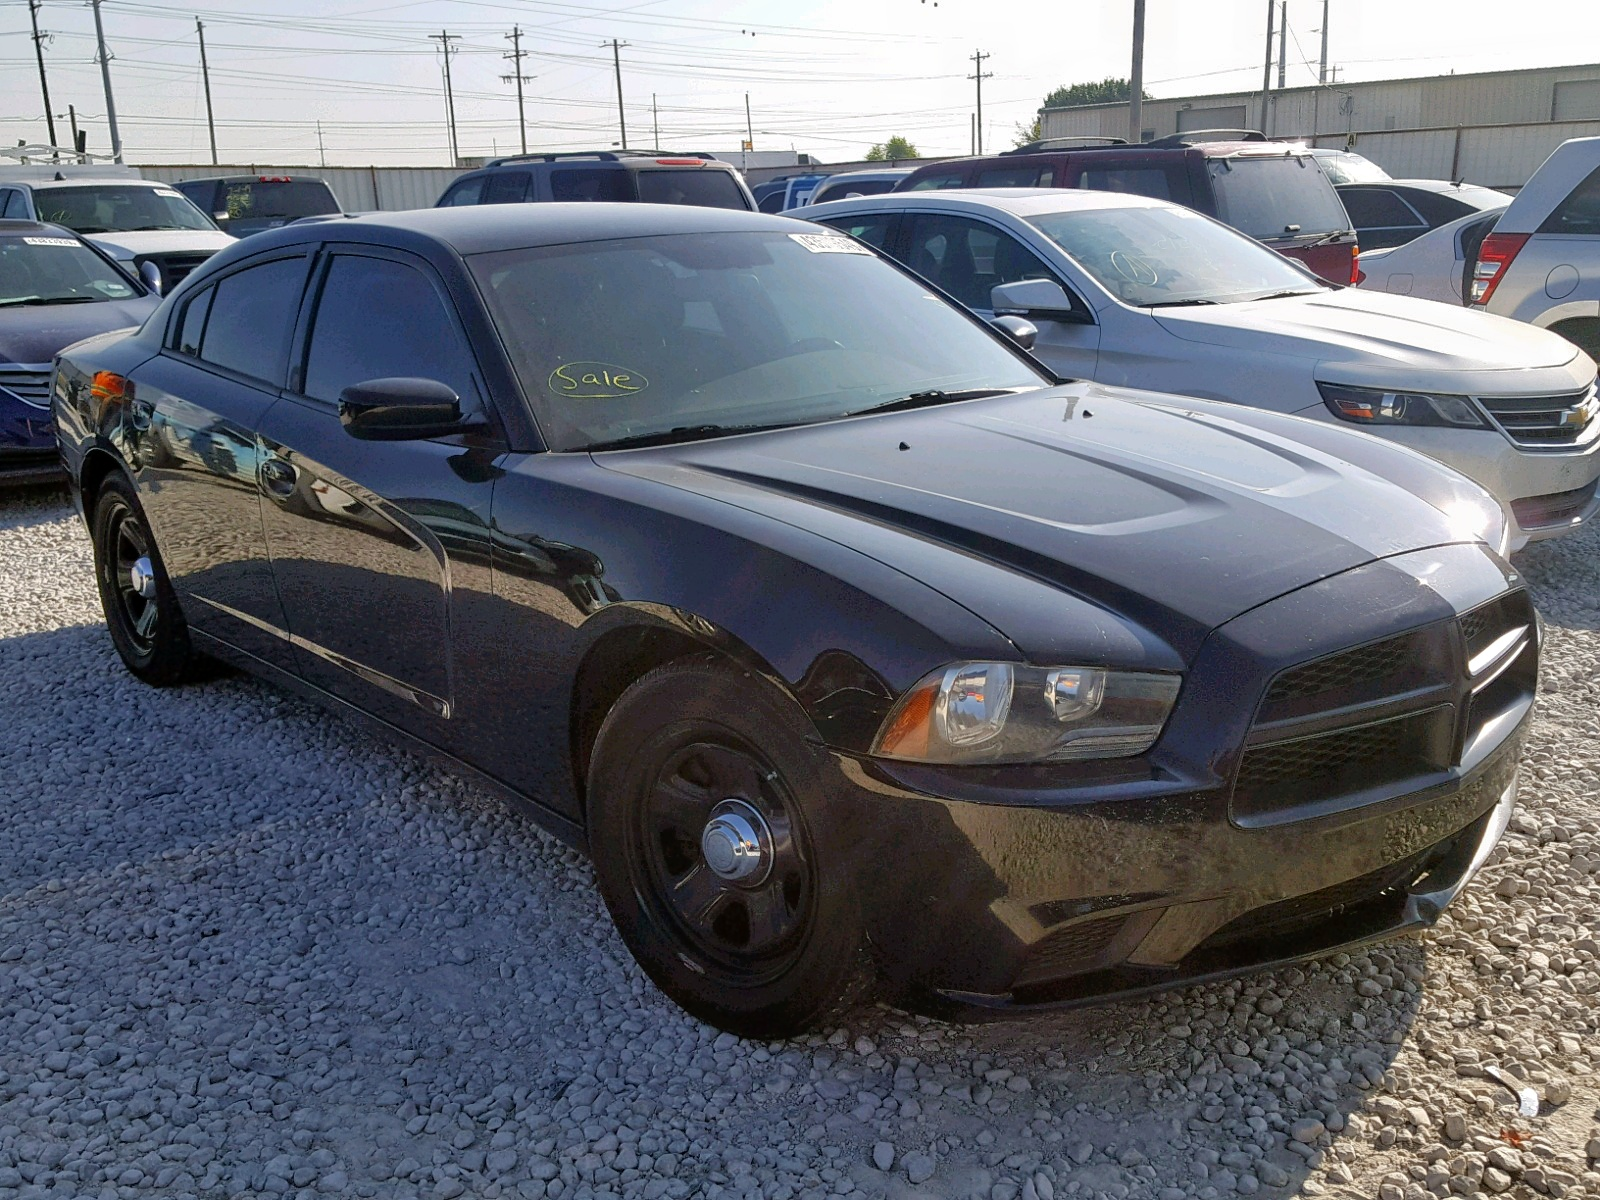 2C3CDXAT5CH266816 - 2012 Dodge Charger Po 5.7L Left View